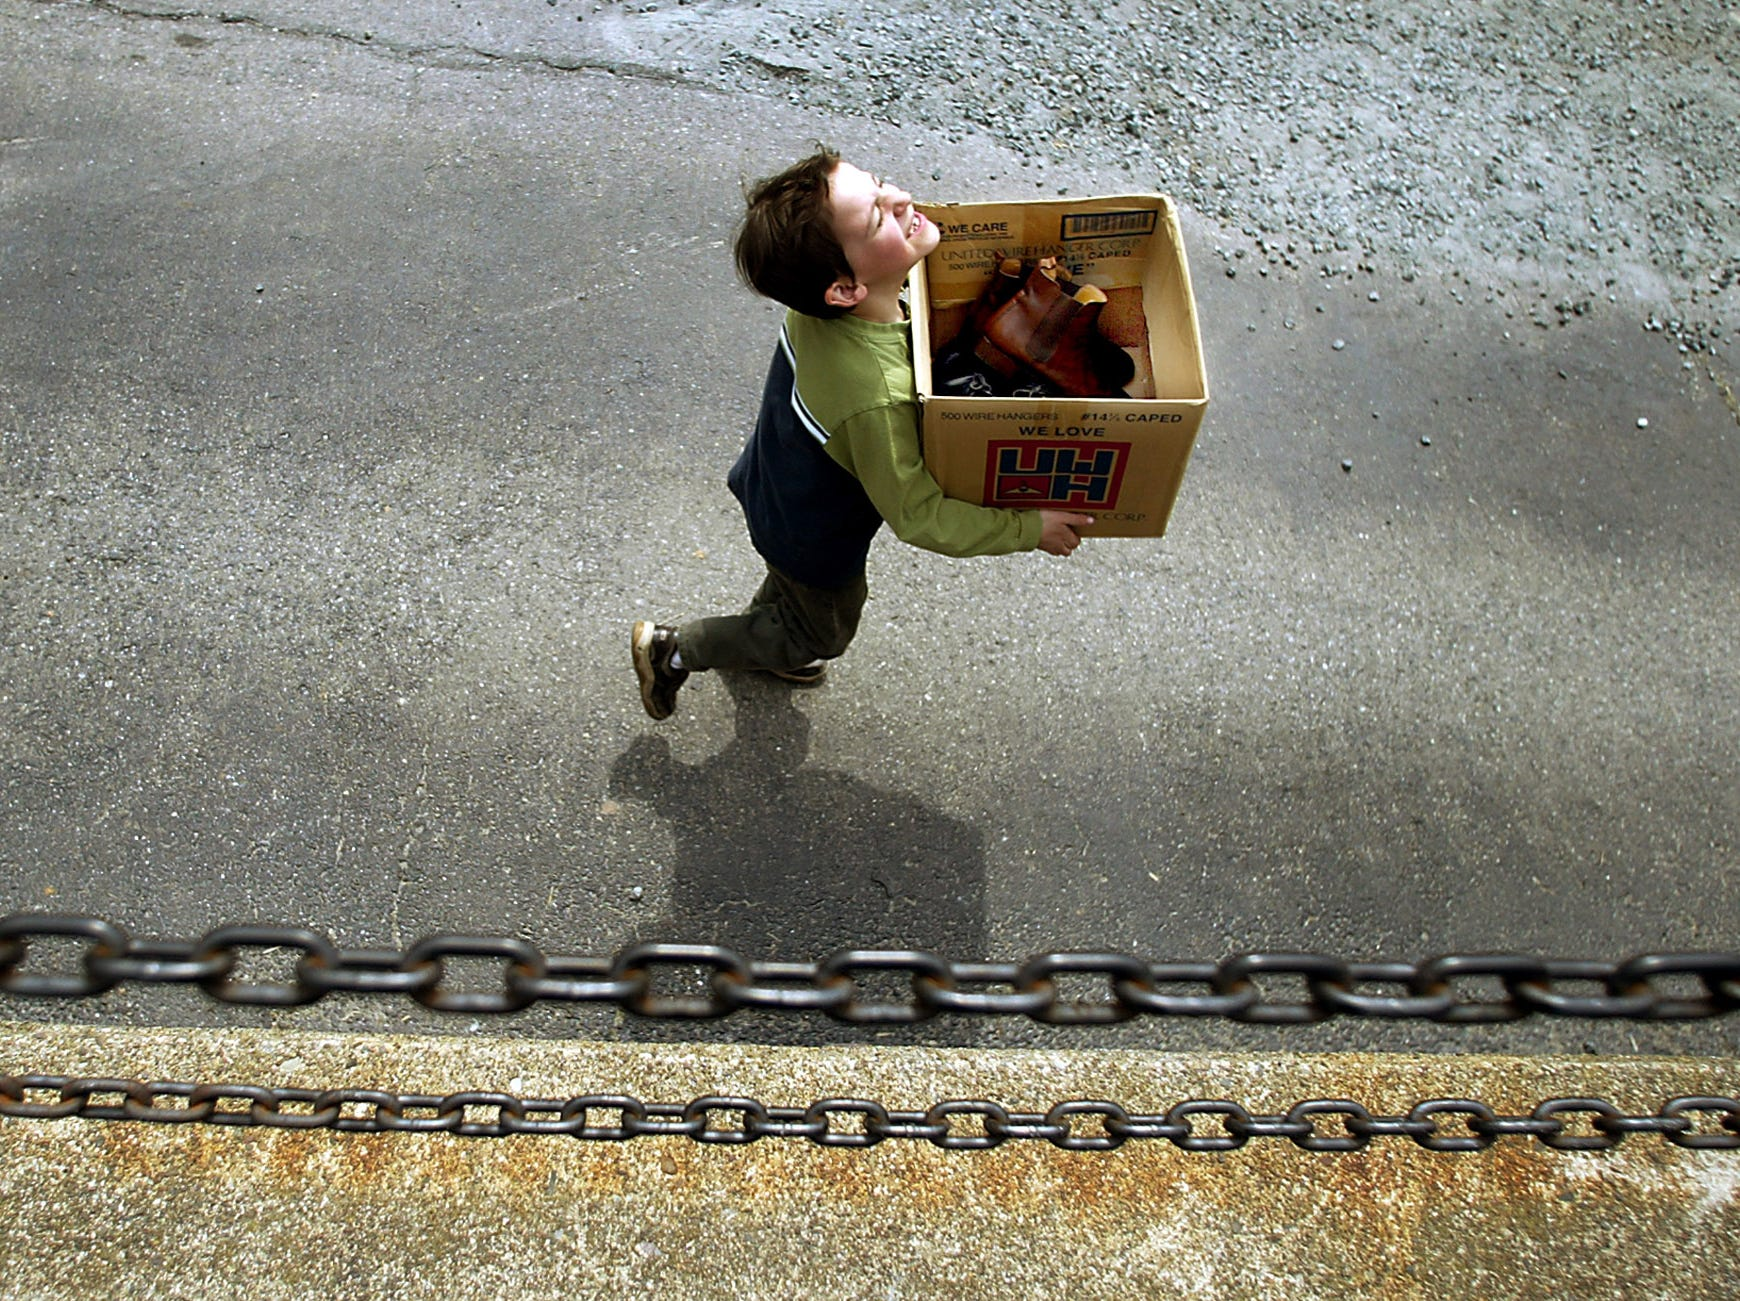 Trent Gardner, 7, laughs as he sprints down the driveway with a box of shoes to deliver to shipping and receiving after a fire destroyed the main building of Rago's, Morristown's historic shoemaker. April 8, 2004, Morristown, NJ